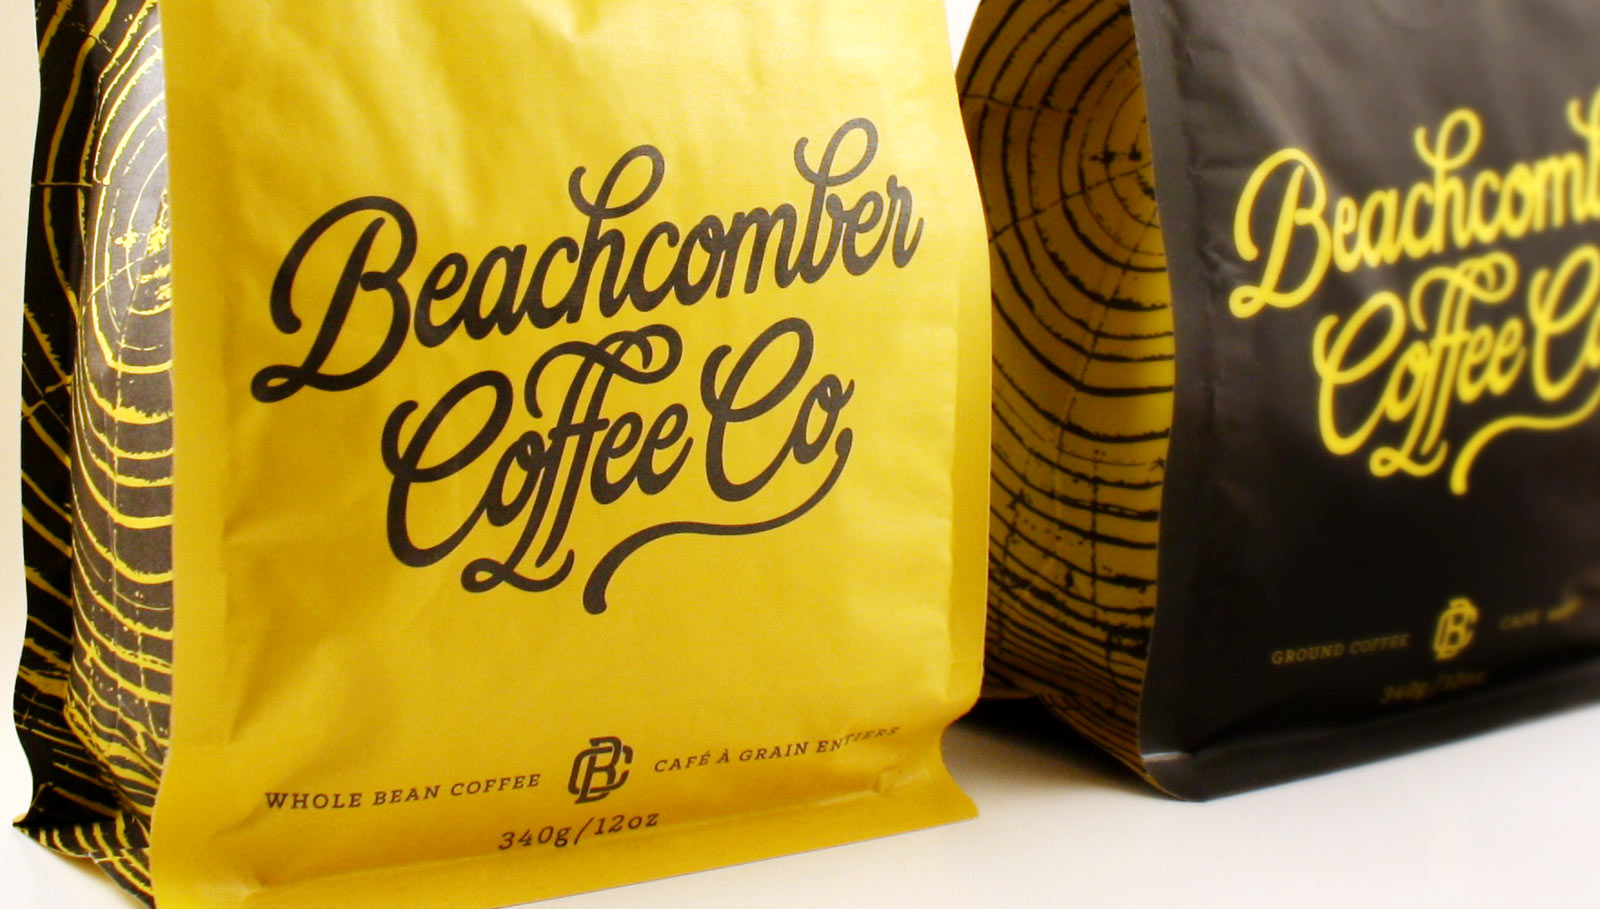 Beachcomber_coffee_bags.jpg